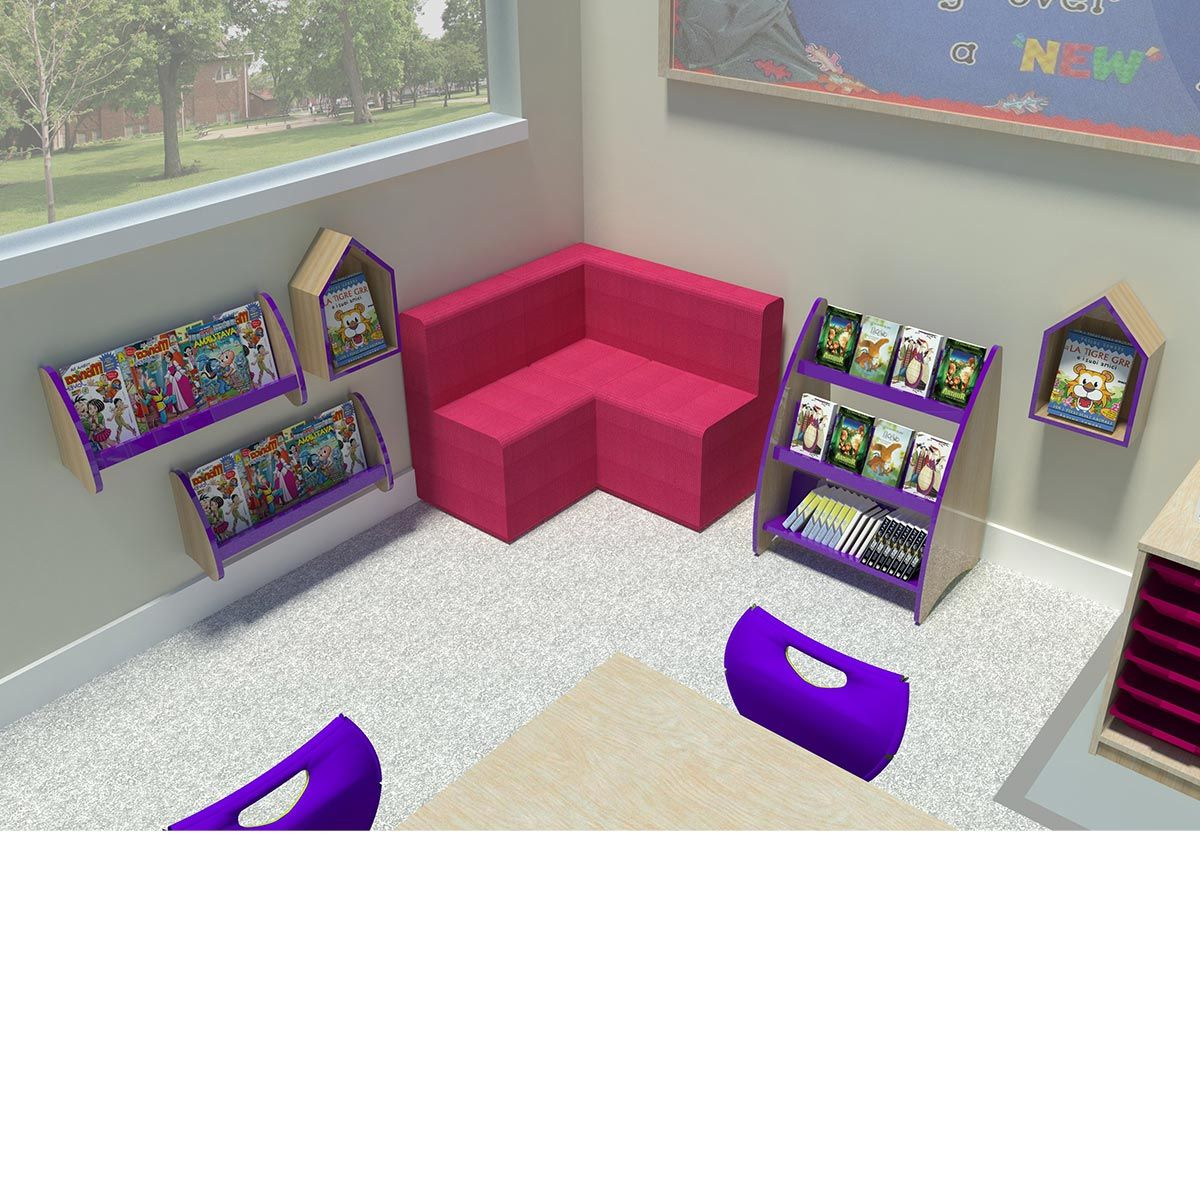 Reading Corner Furniture story corner furniture - perfect for ks1 reading corners in